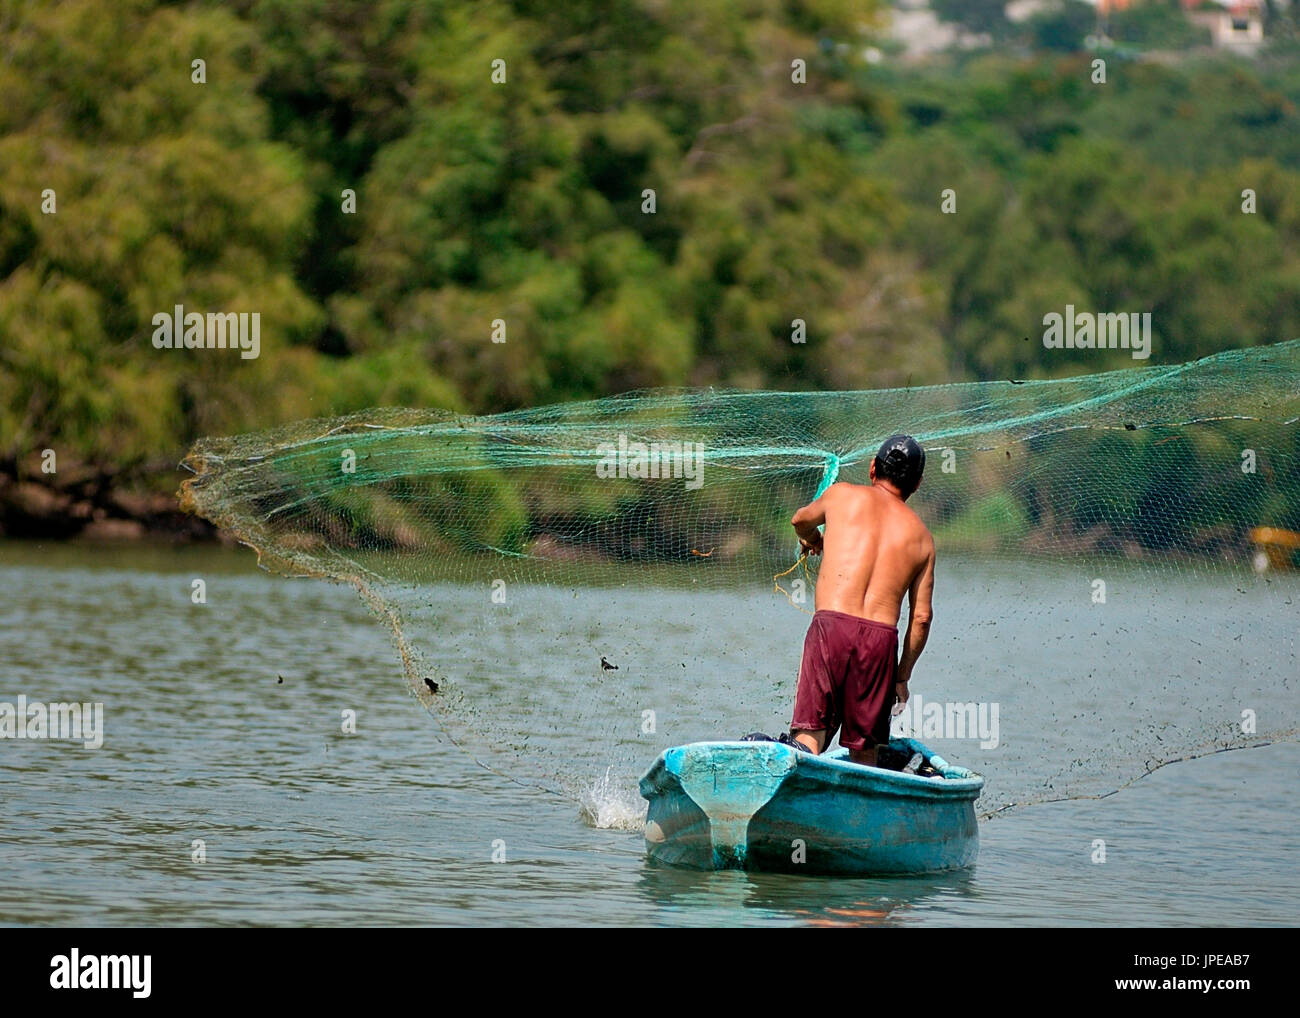 Fisherman of the Sumidero Canyon. Tuxtla Gutiérrez, Chiapas, Mexico. - Stock Image